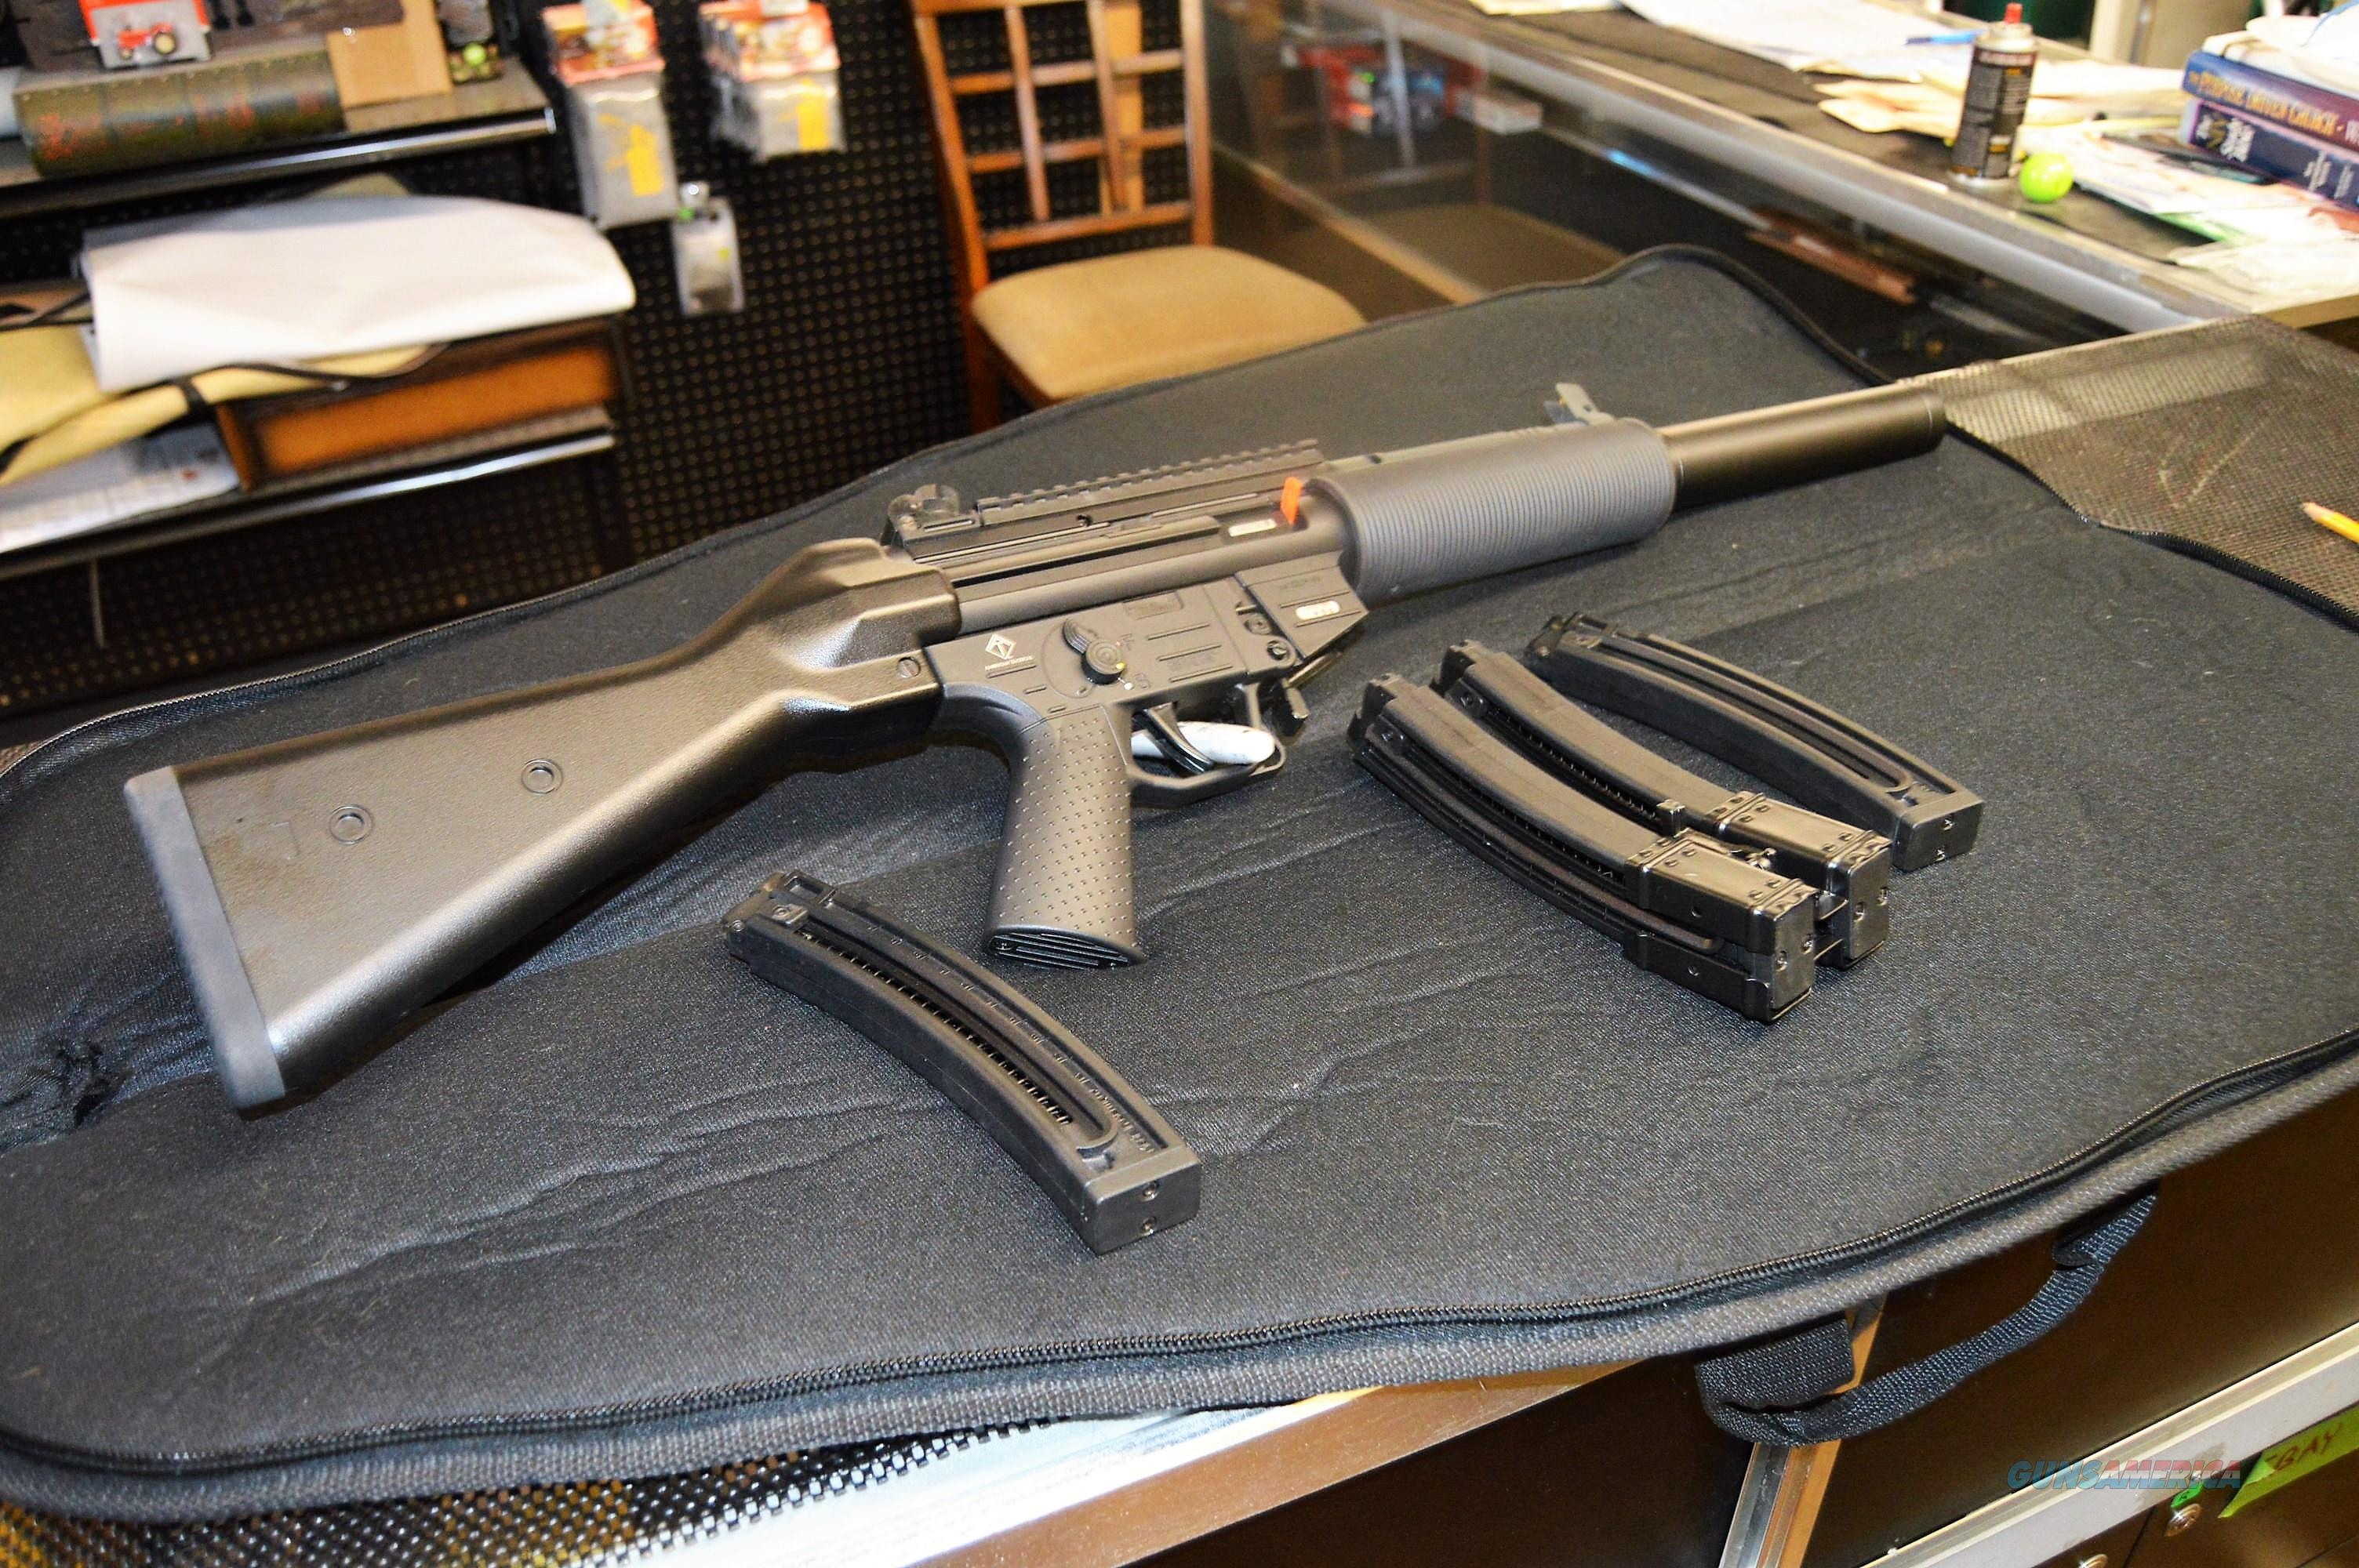 American Tactical GSG-522-SD  Guns > Rifles > American Tactical Imports Rifles